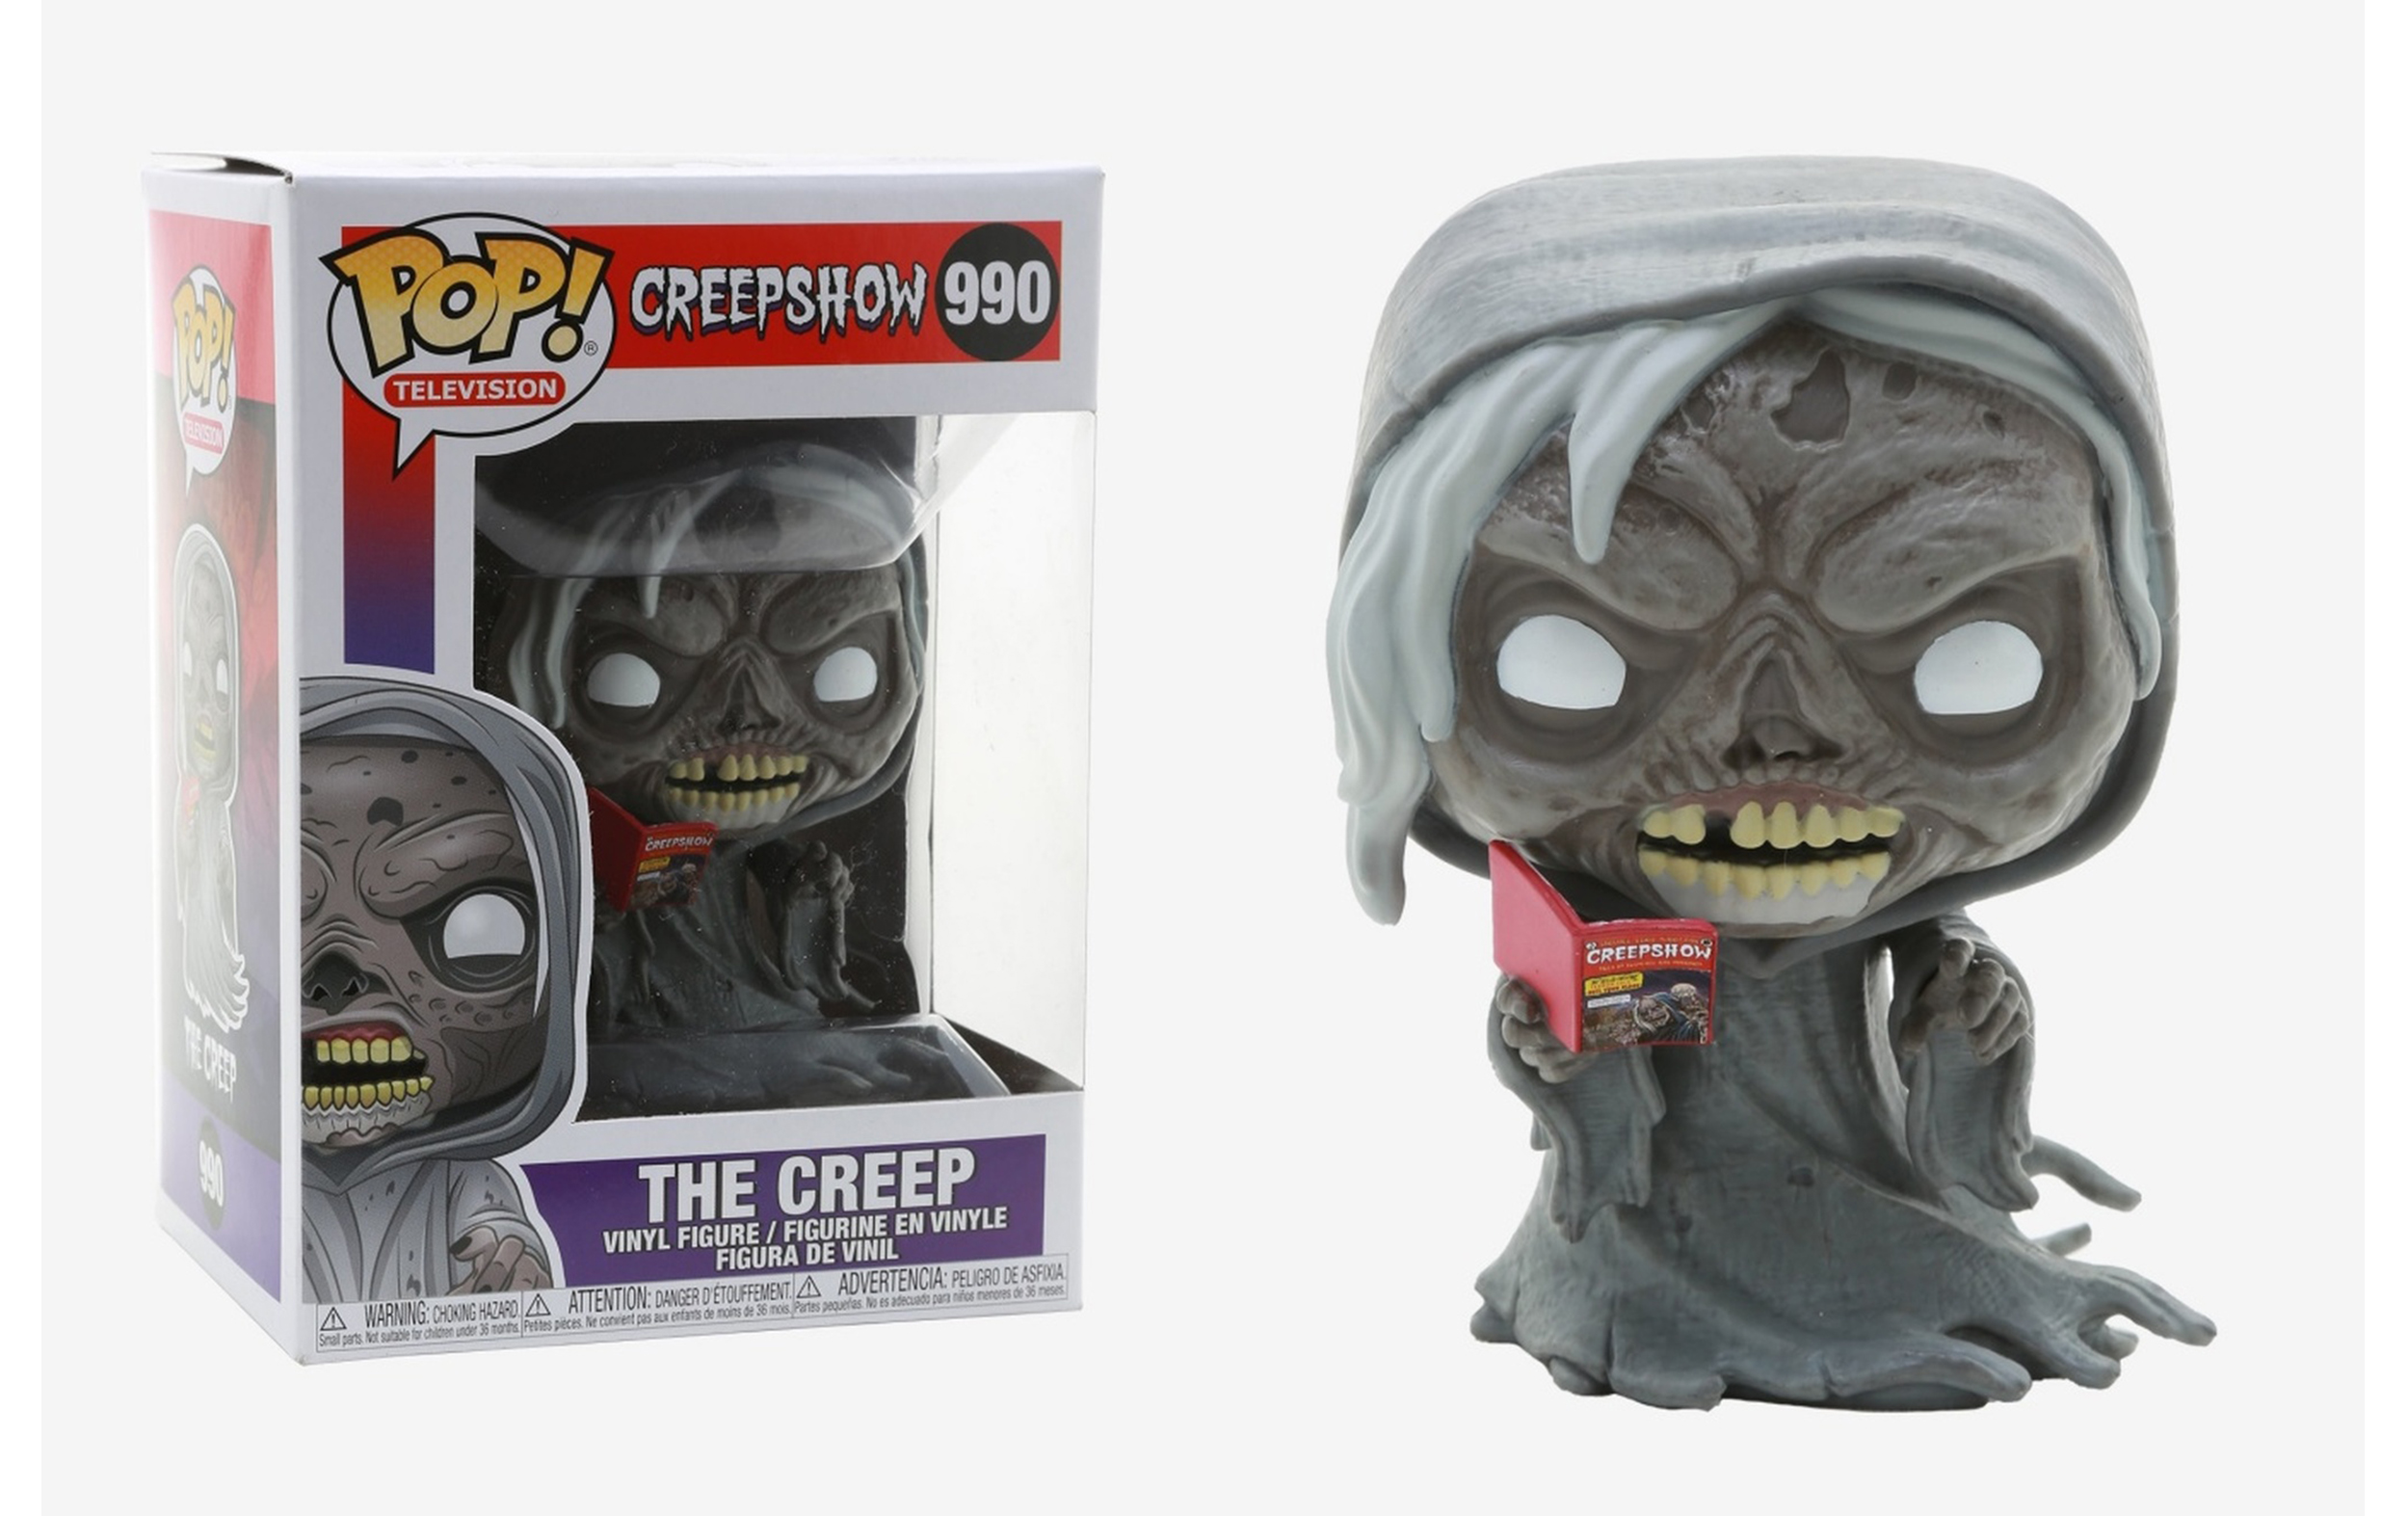 Creepshow The Creep 990 Funko POP Vinyl Figure